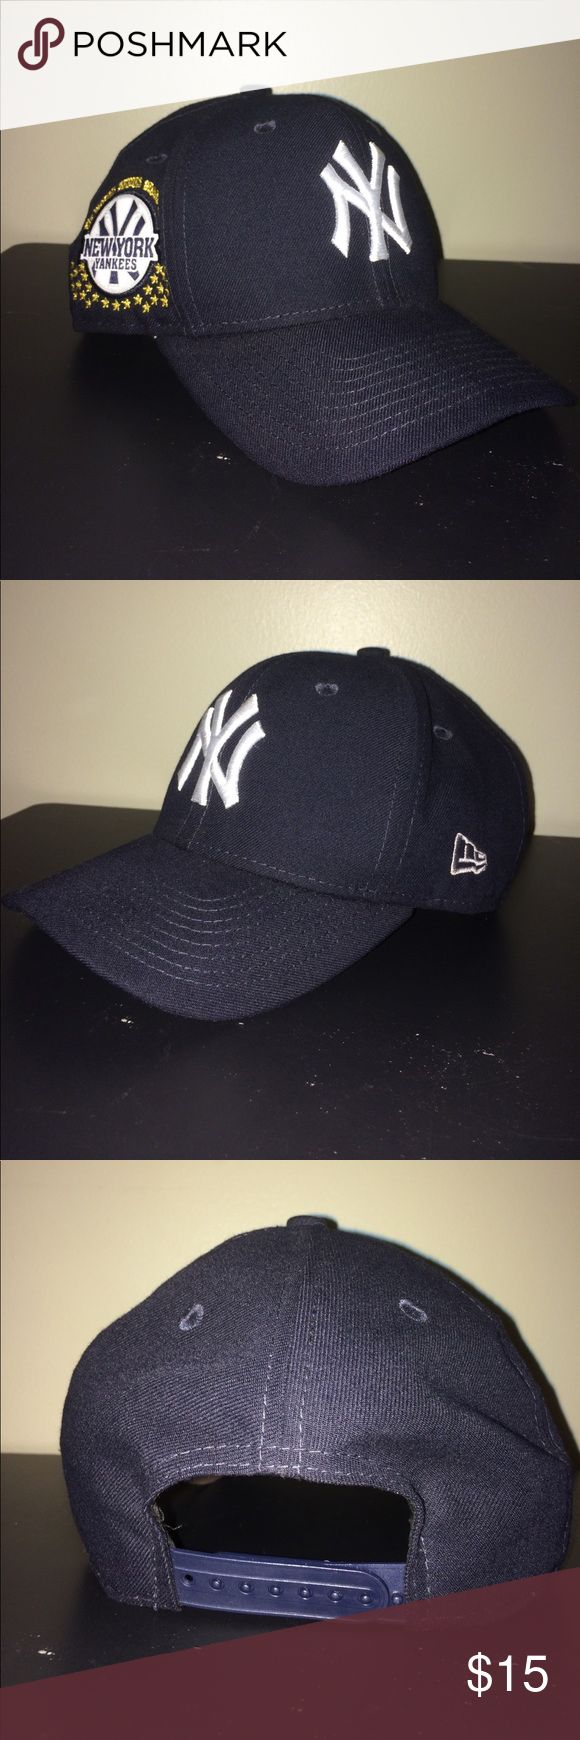 New era Yankees snap back hat men's New era Yankees snap back hat. Worn few times in good condition. No stains, holes, or tears. New Era Accessories Hats